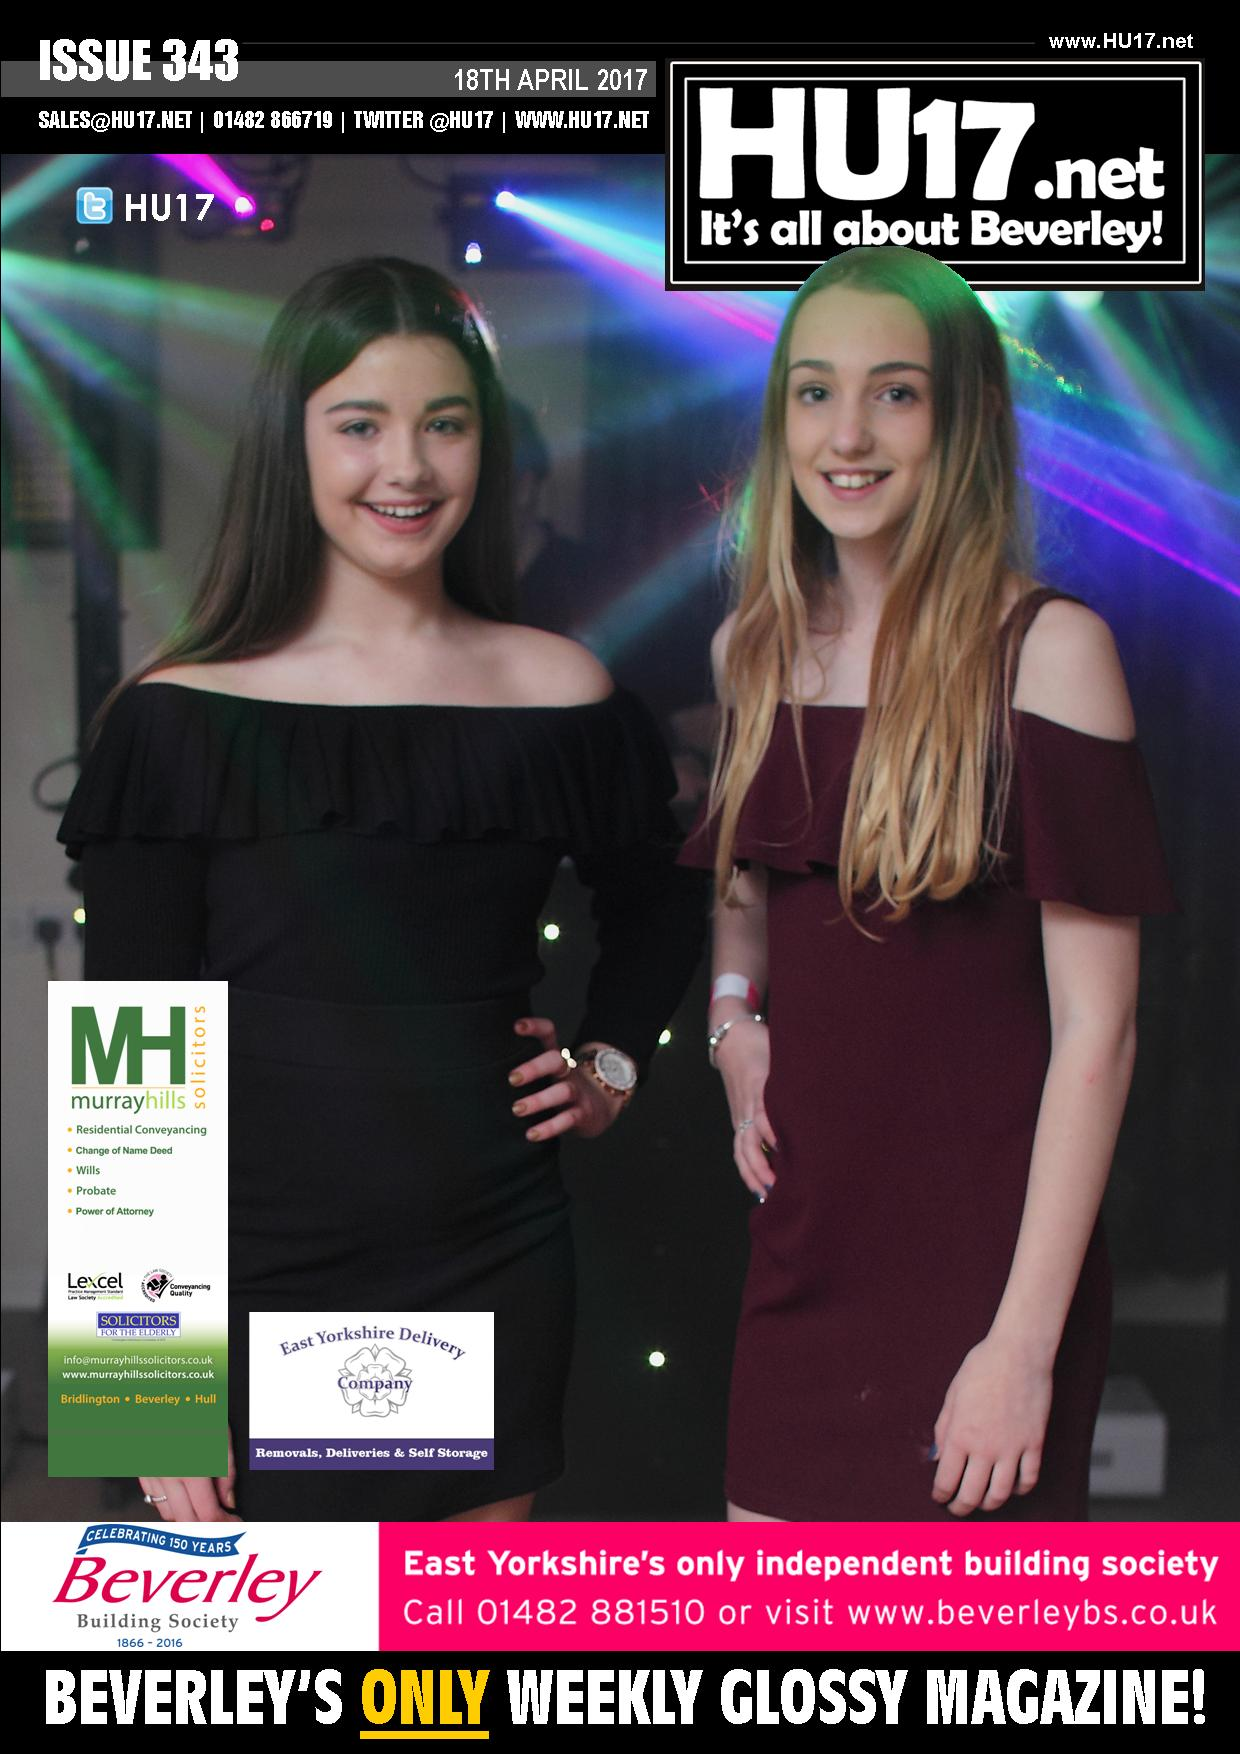 HU17.net Magazine Issue 343